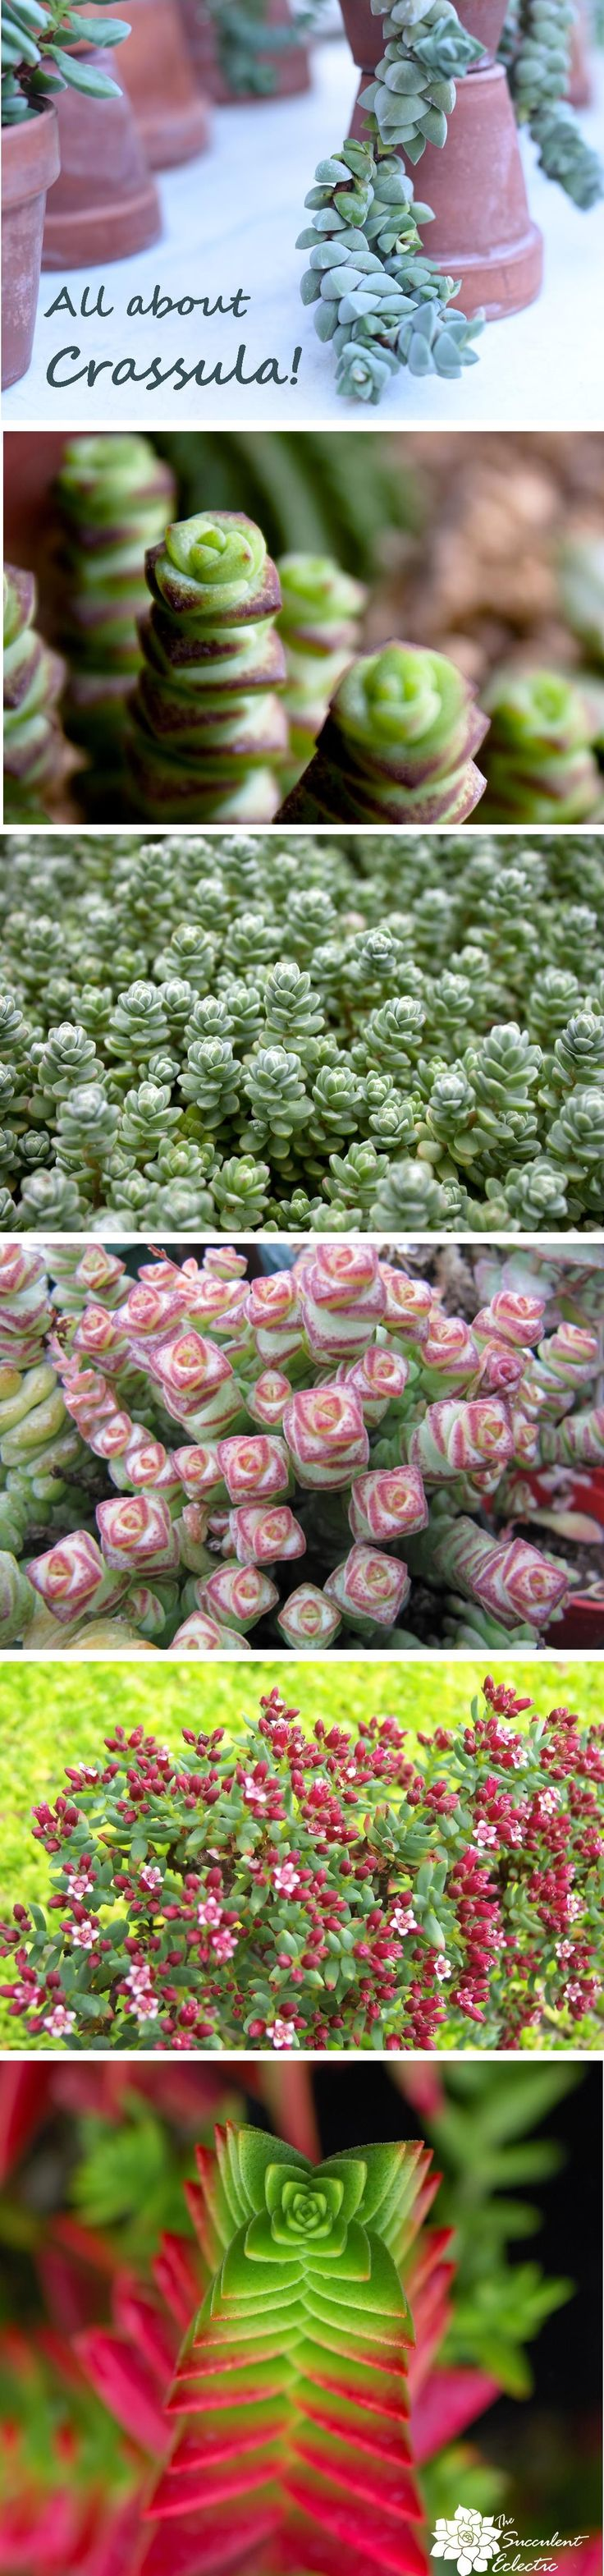 Crassula grown in many shapes, colors and sizes. Some are even terrific houseplants!